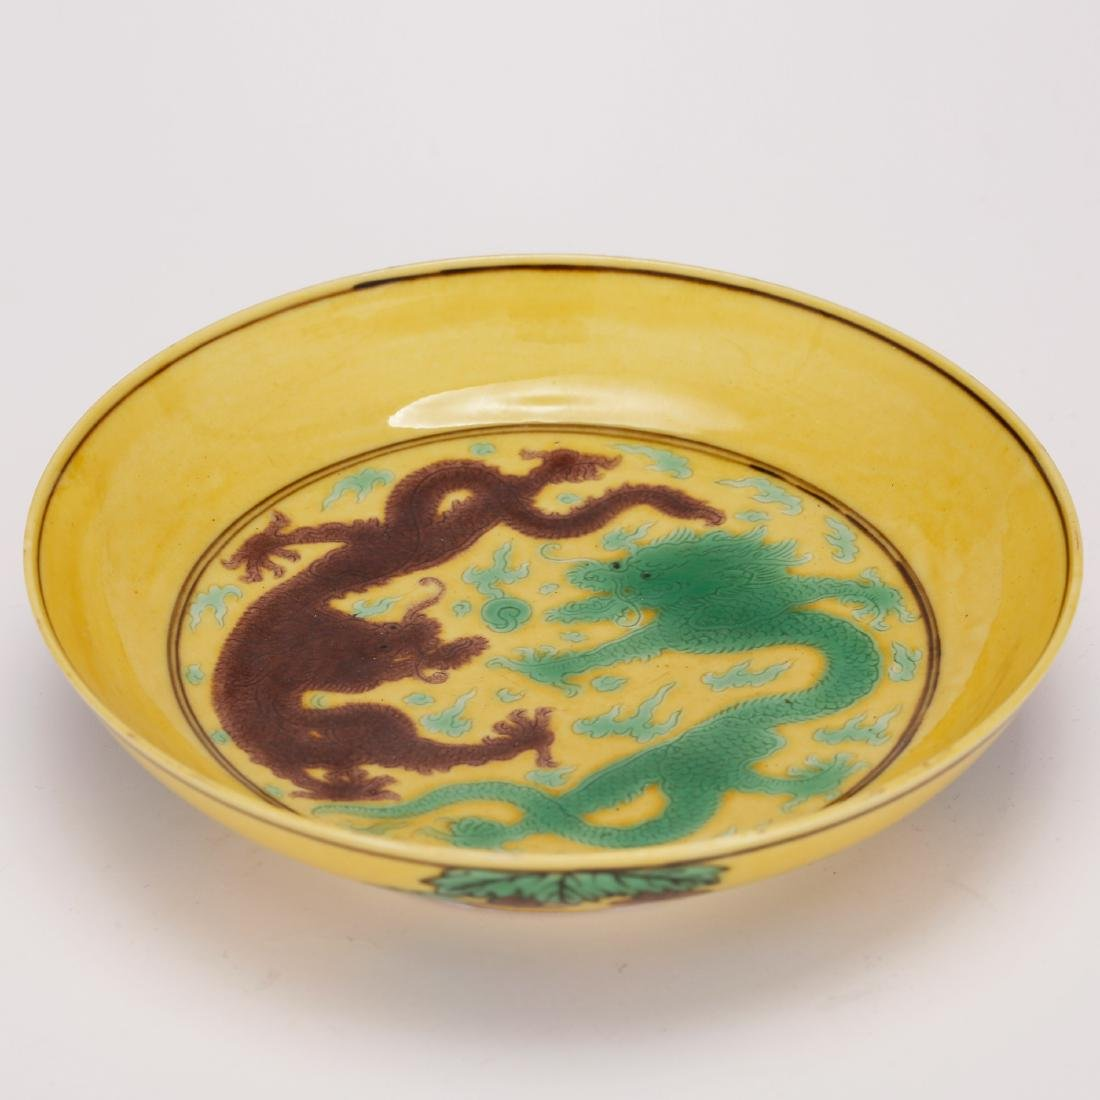 CHINESE YELLOW GROUND PORCELAIN PLATE - 4